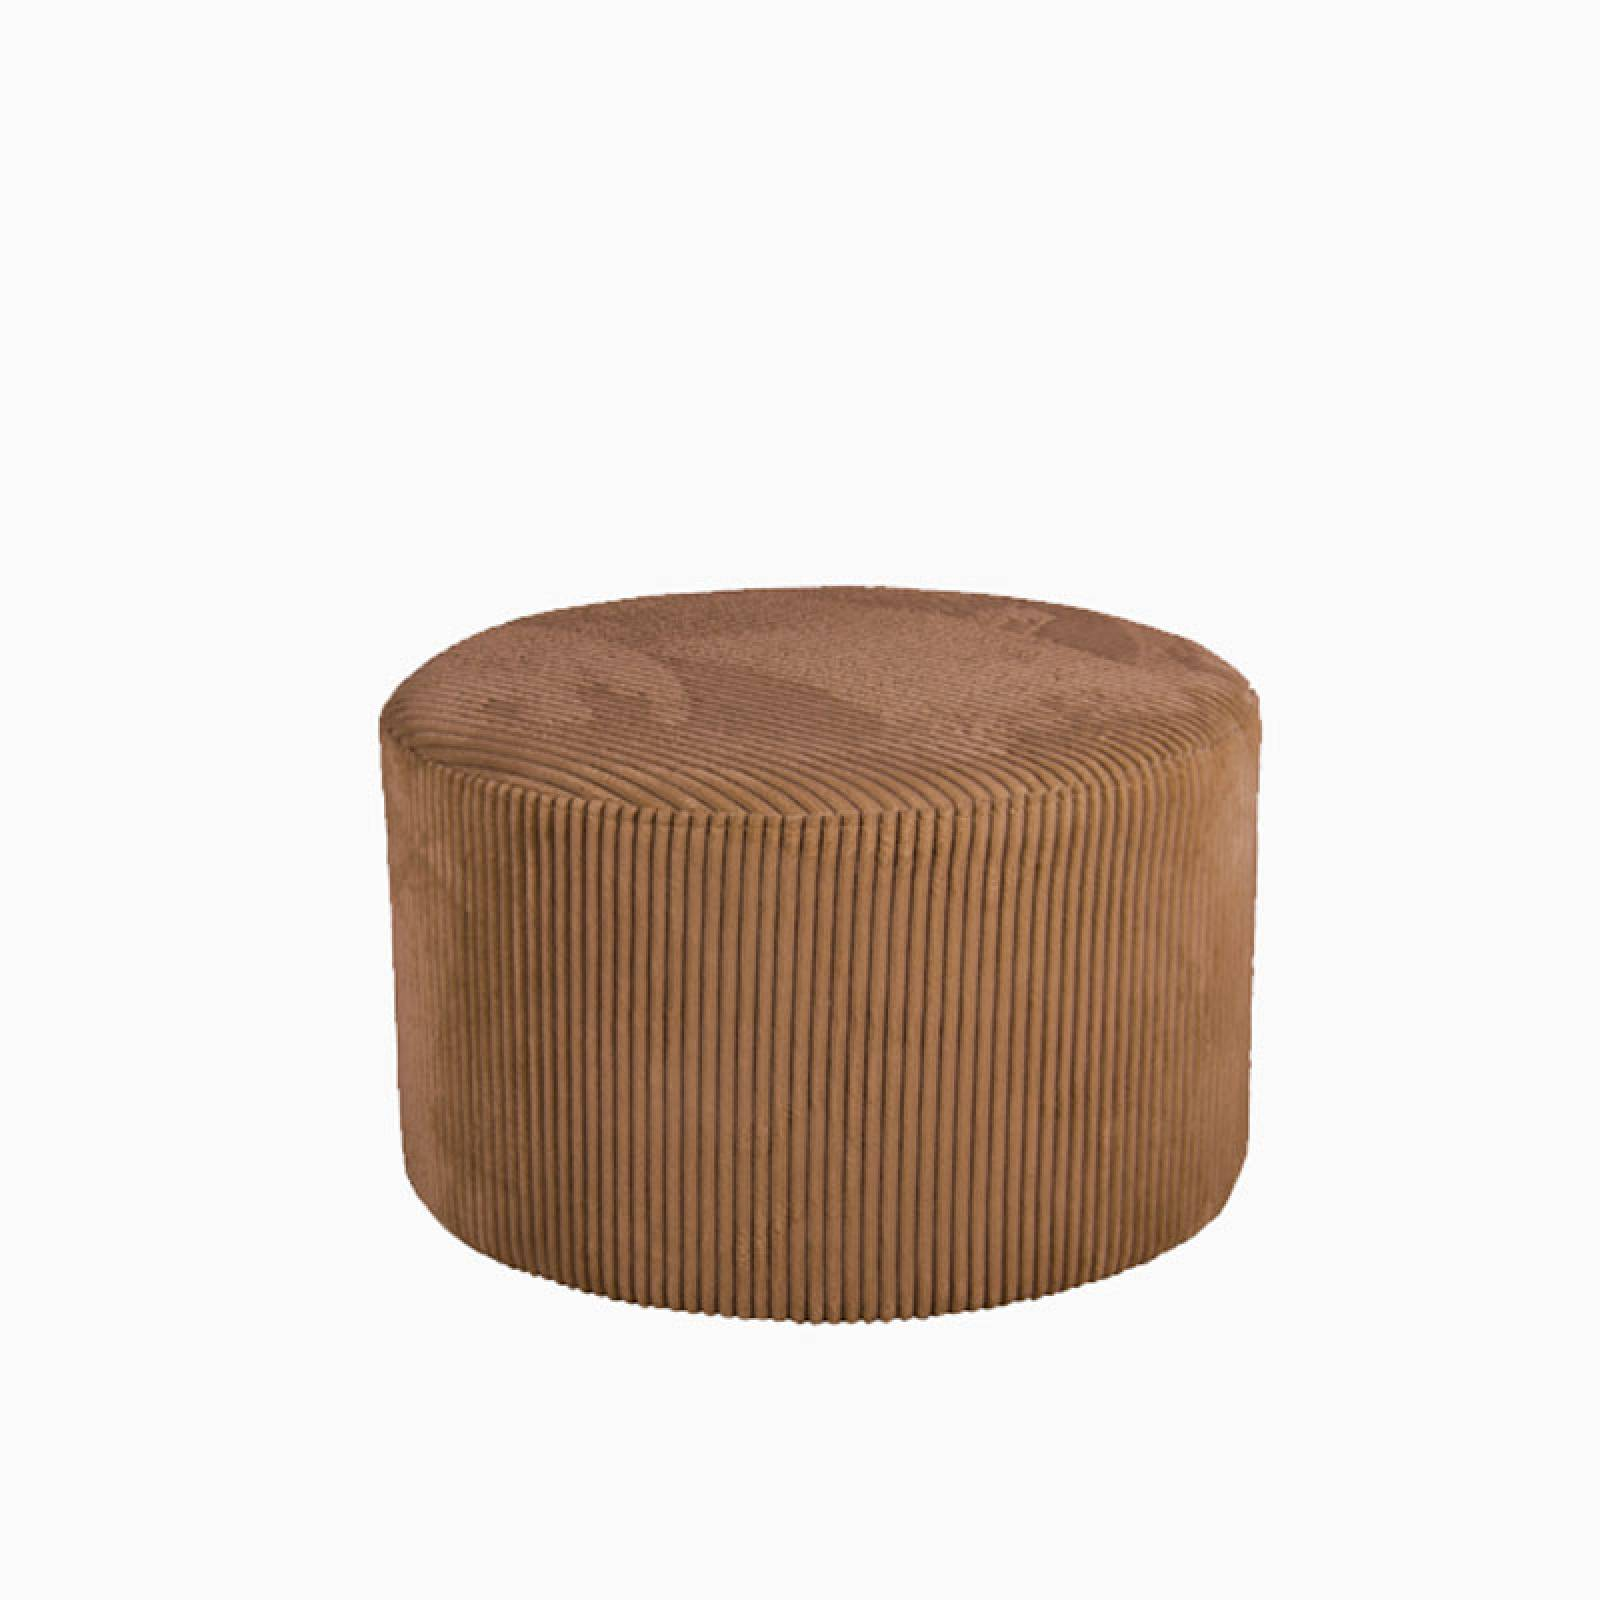 Small Corduroy Pouf In Caramel Brown